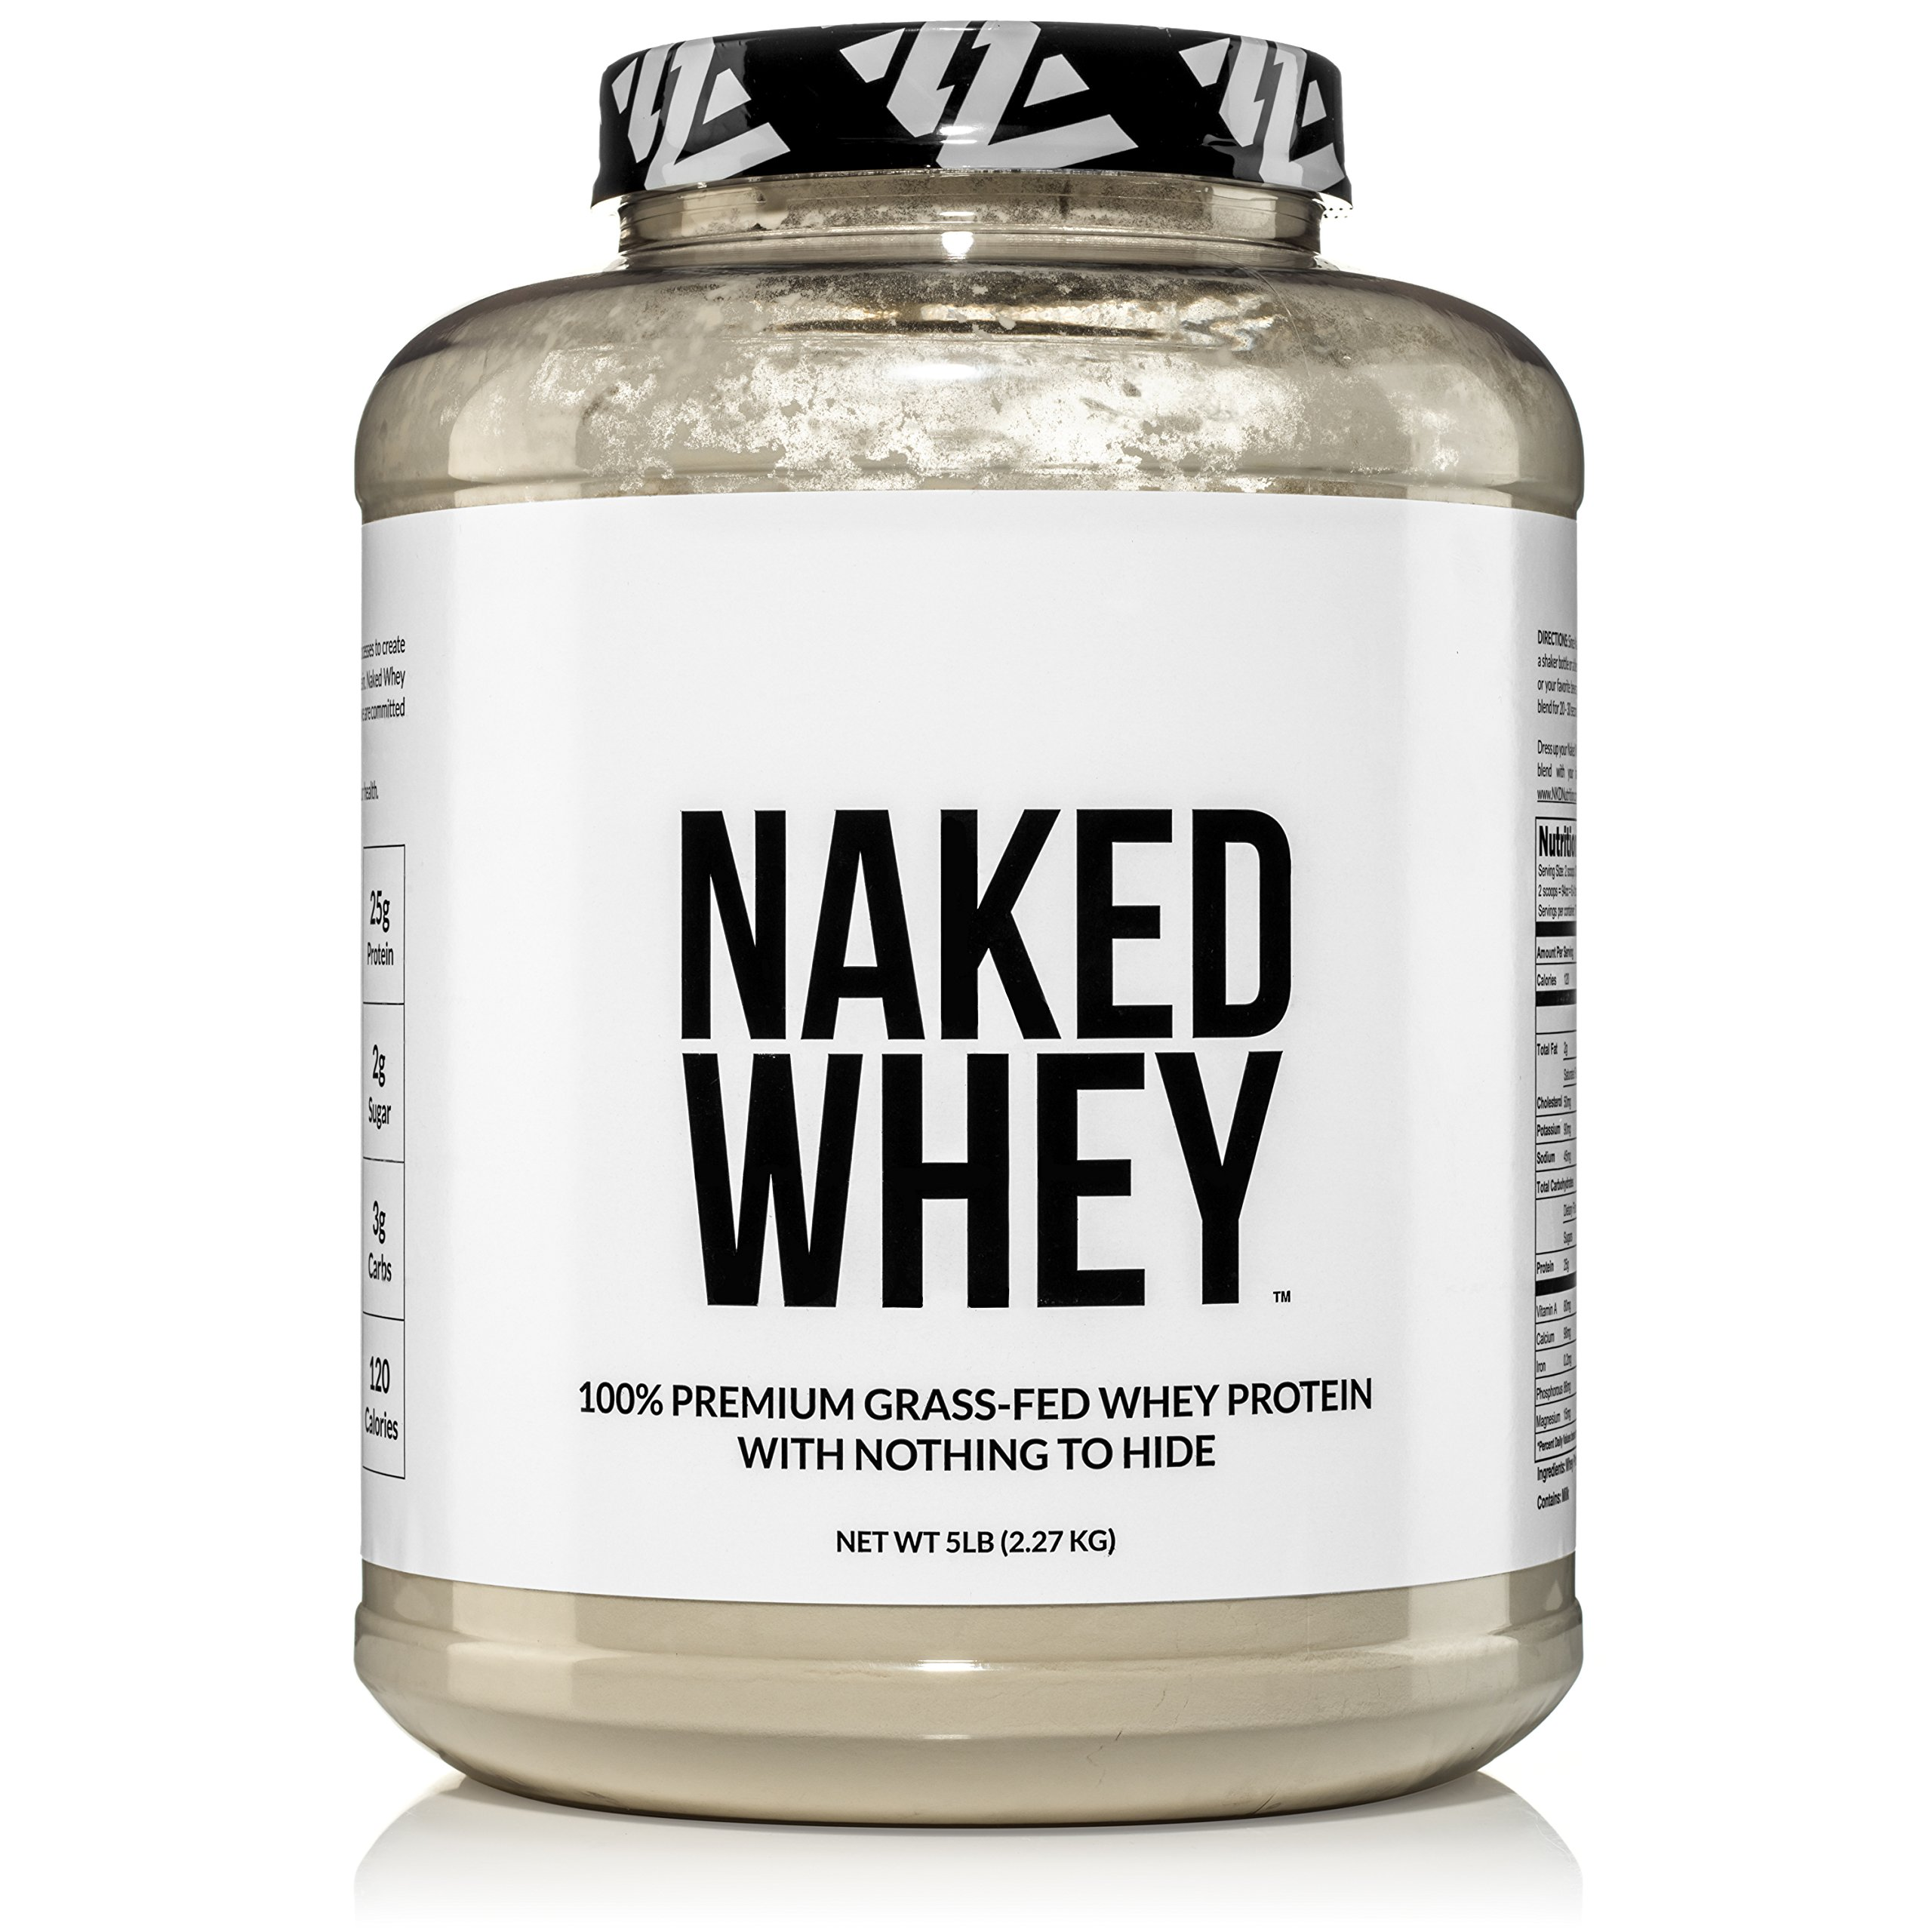 NAKED WHEY 5LB 100% Grass Fed Whey Protein Powder - US Farms, 1 Undenatured, Bulk, Unflavored - GMO, Soy, and Gluten Free - No Preservatives - Stimulate Muscle Growth - Enhance Recovery - 76 Servings by NAKED nutrition